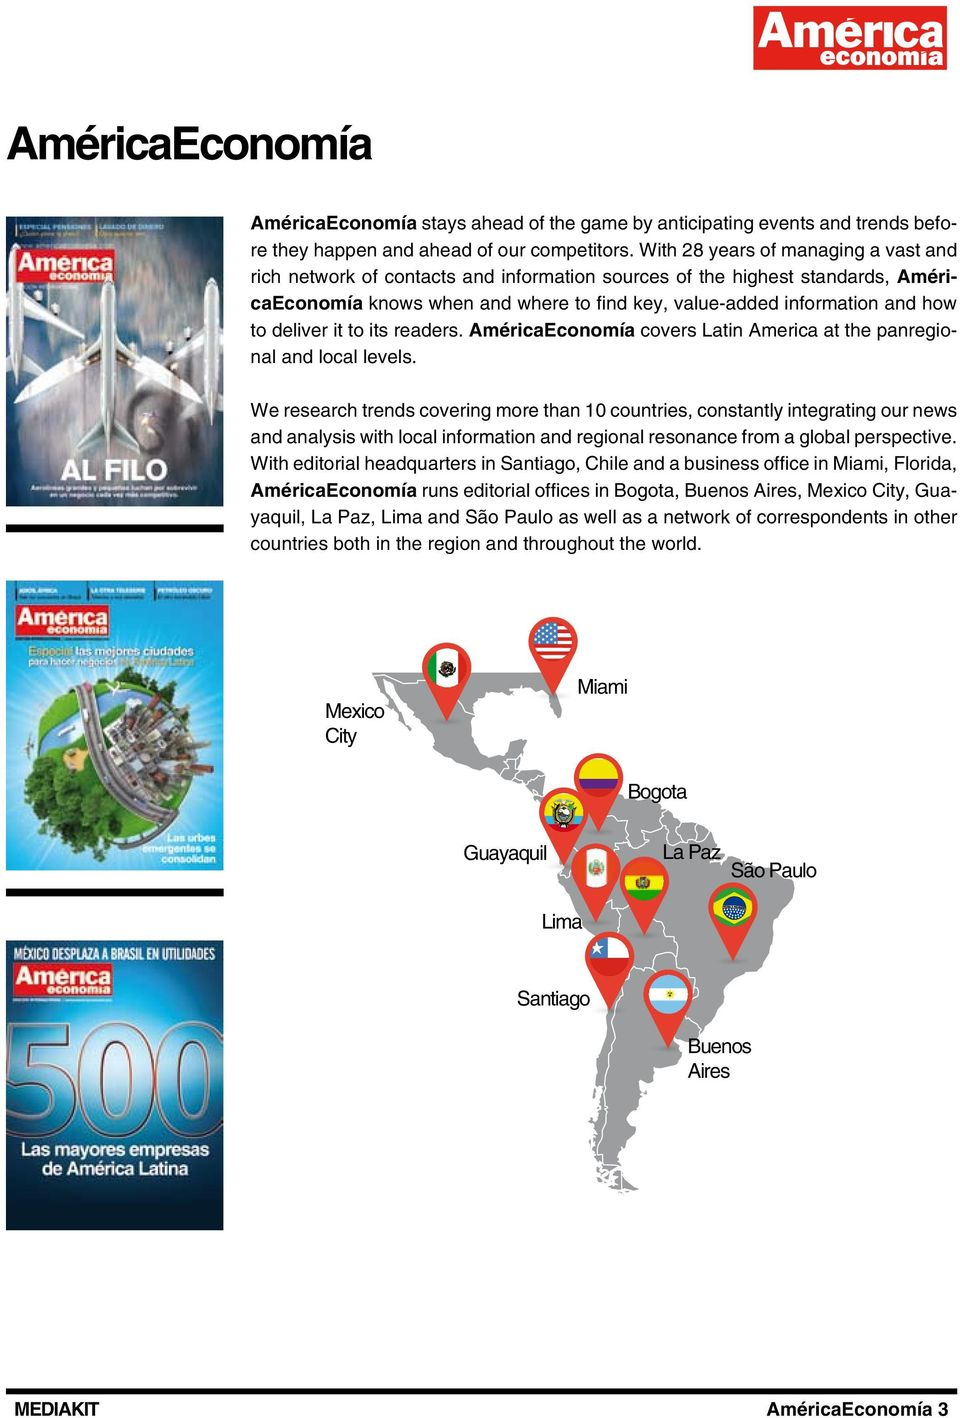 deliver it to its readers. AméricaEconomía covers Latin America at the panregional and local levels.